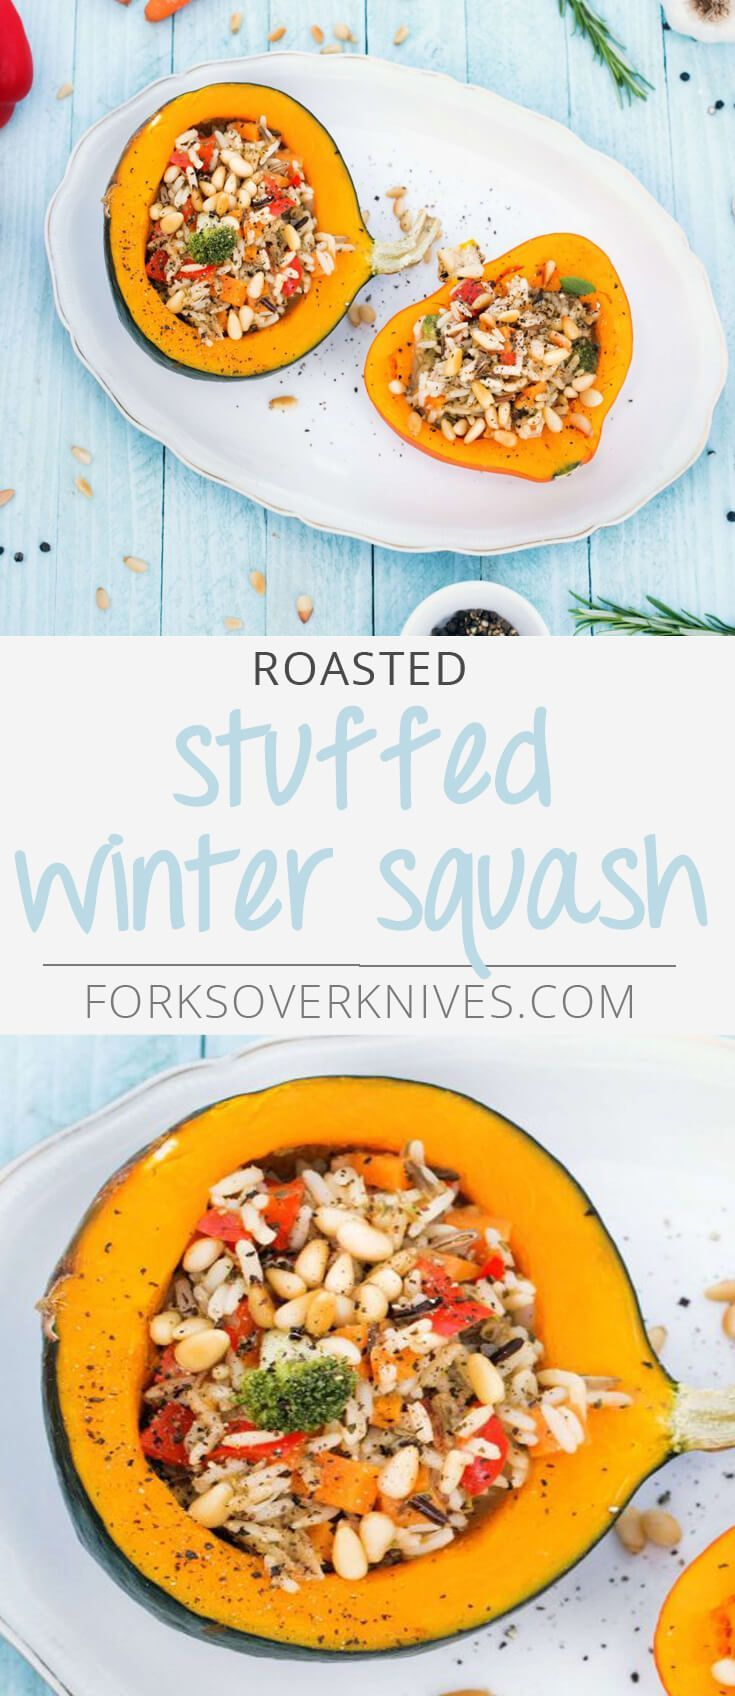 Roasted Stuffed Winter Squash - Plant-Based Vegan Recipe